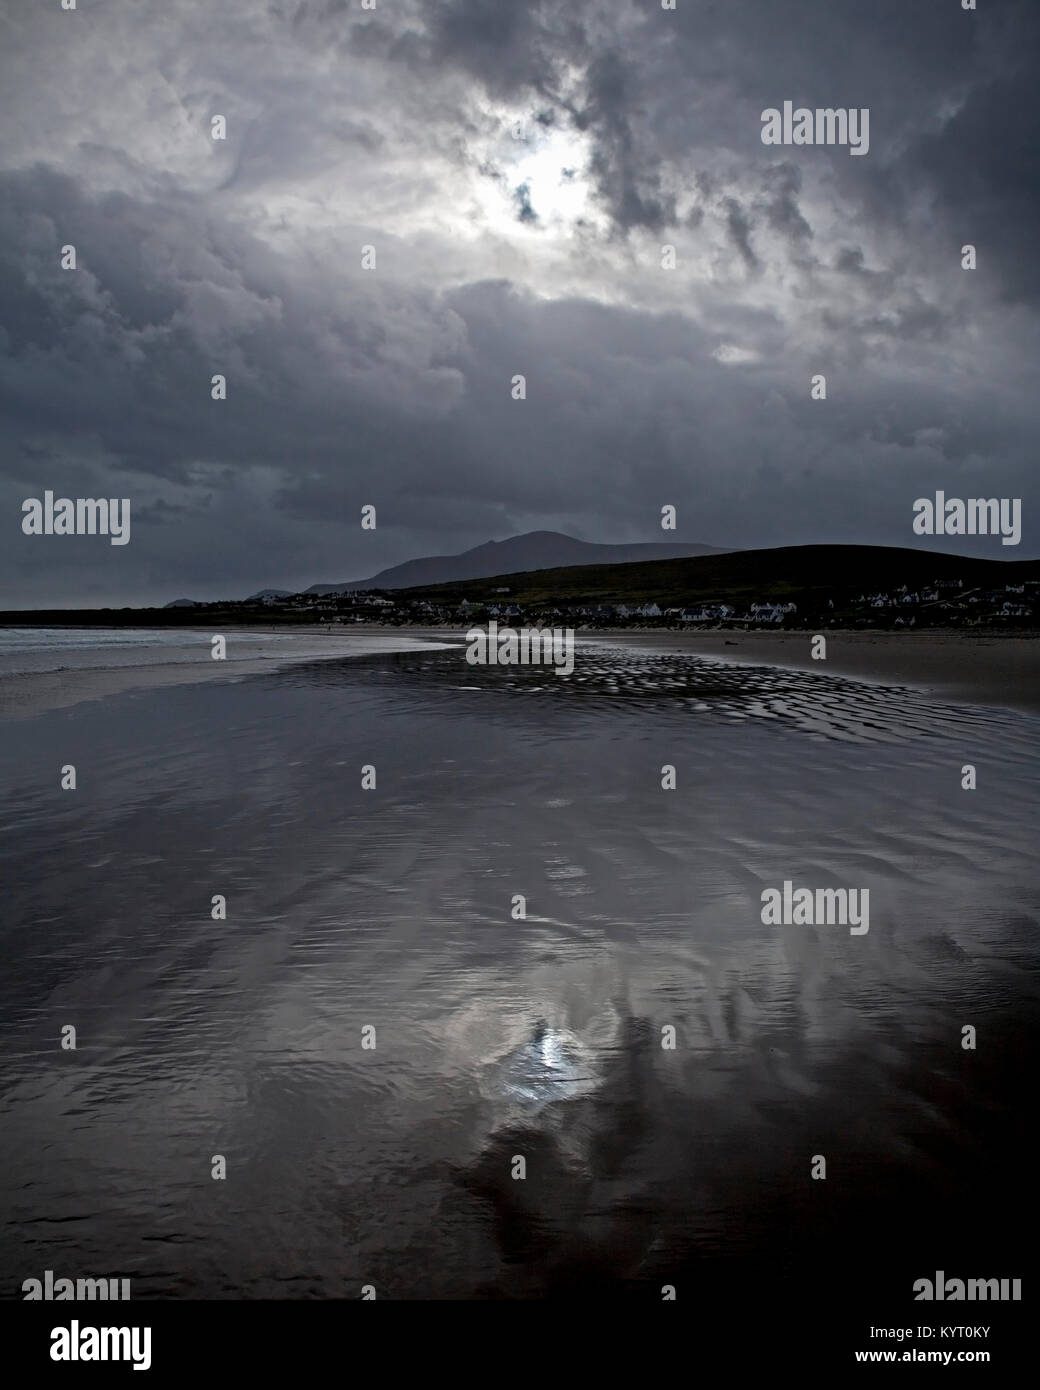 Stormy clouds reflecting in wet sand on the beach at Achill Island on the Irish coast - Stock Image